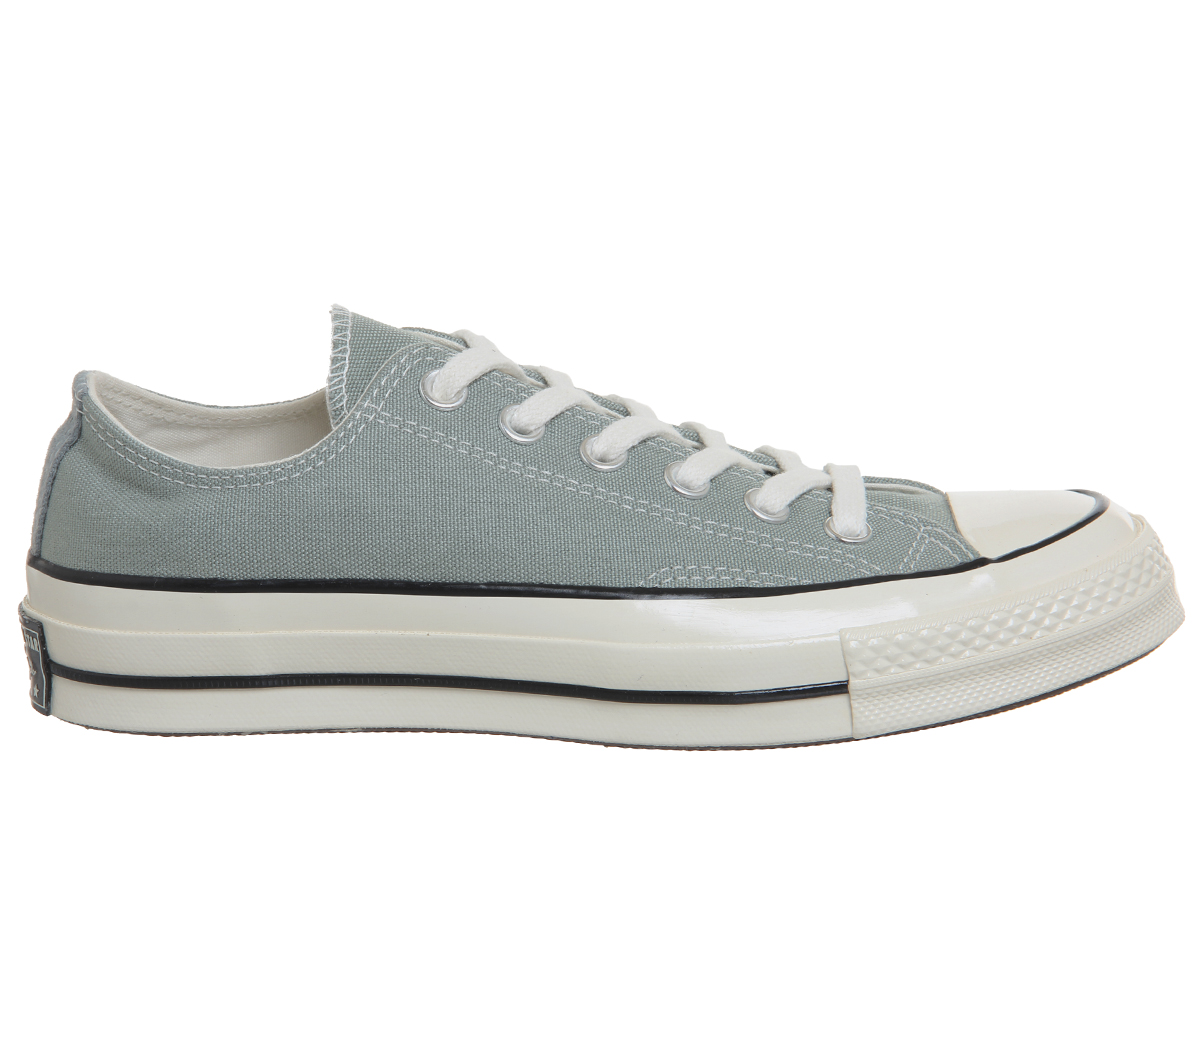 fa96a70b314 Sentinel Converse All Star Ox 70 Trainers Mica Green Black Egret Trainers  Shoes